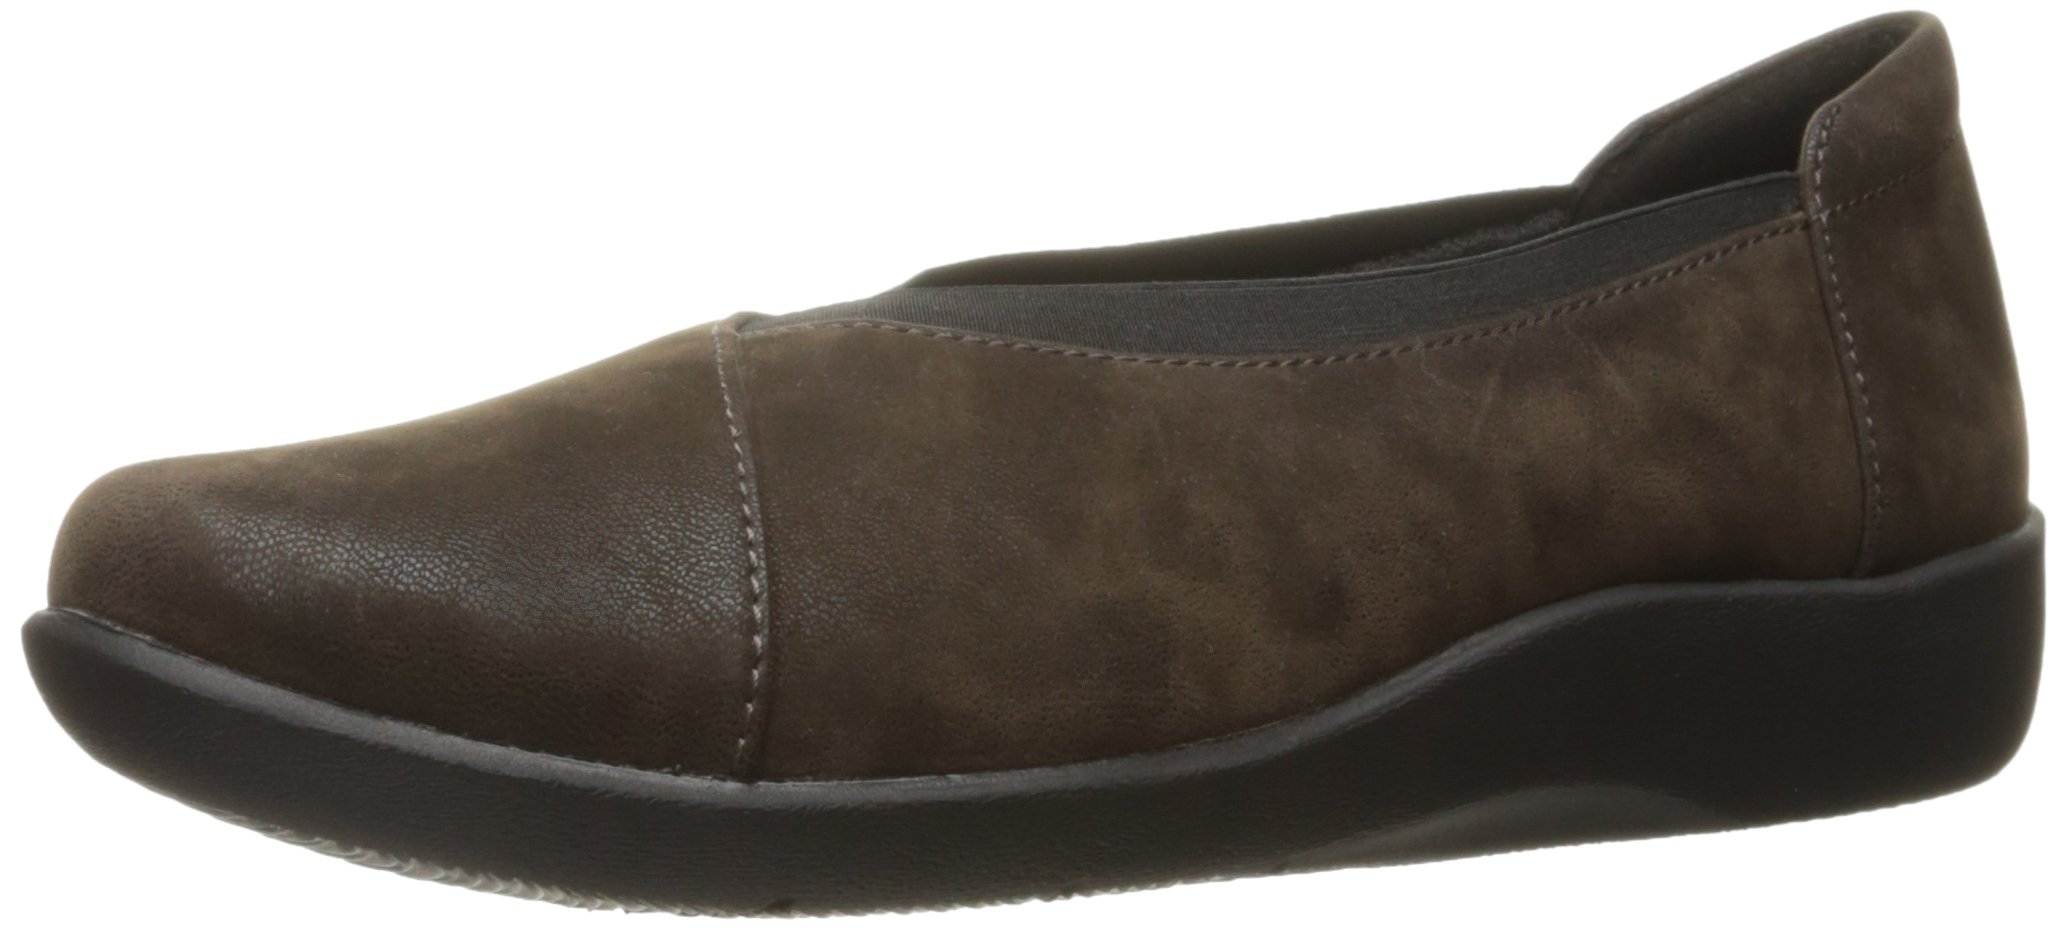 CLARKS Women's Sillian Holly Flat, Brown Synthetic, 8.5 M US